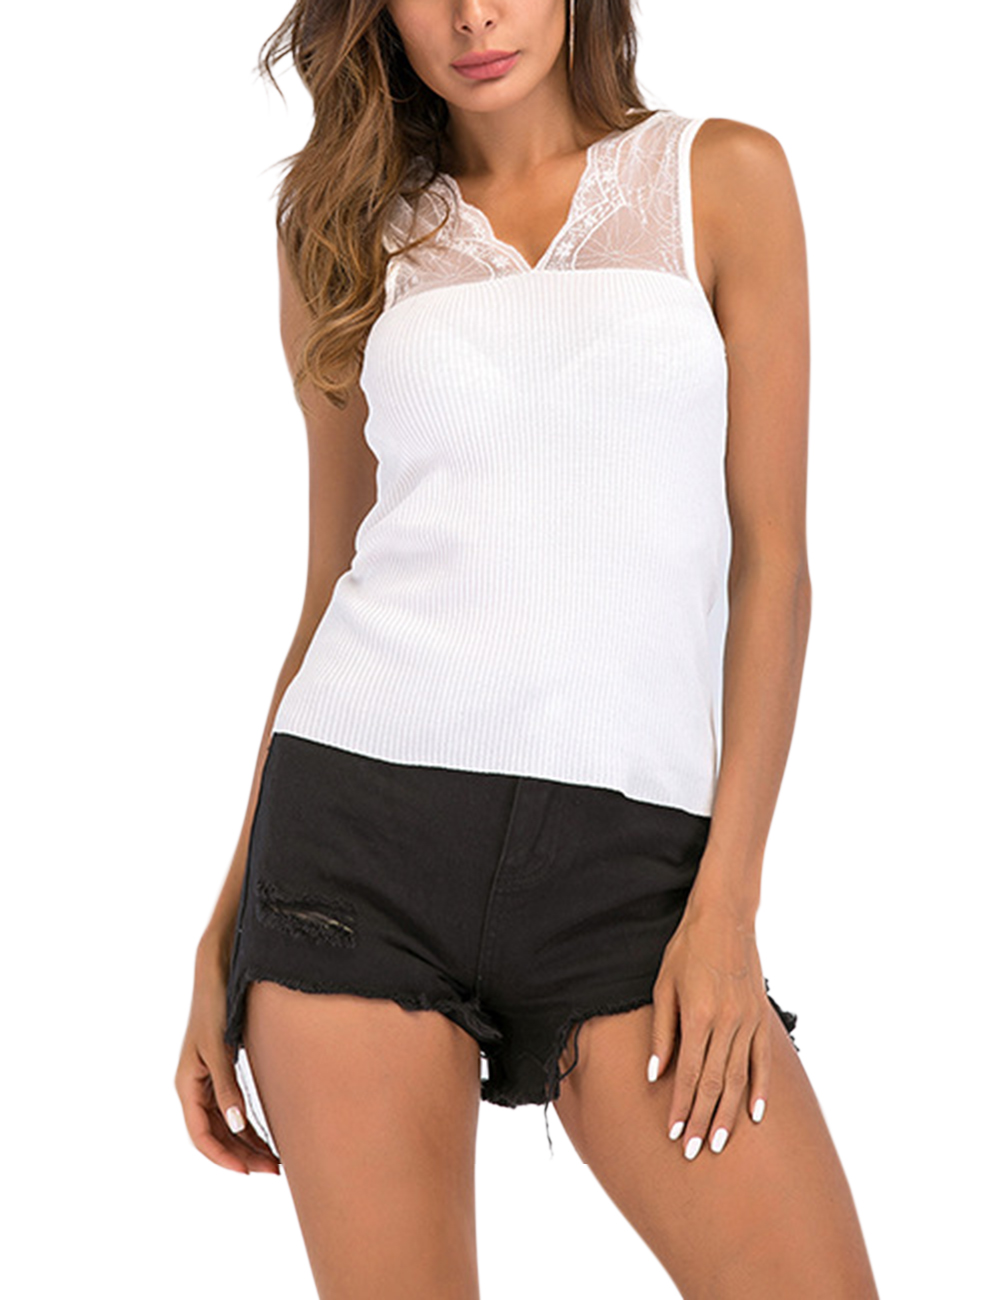 Women Fashionable V-Neck Lace Vest Elegant Sleeveless Tops Sexy Kintting Concise Tops